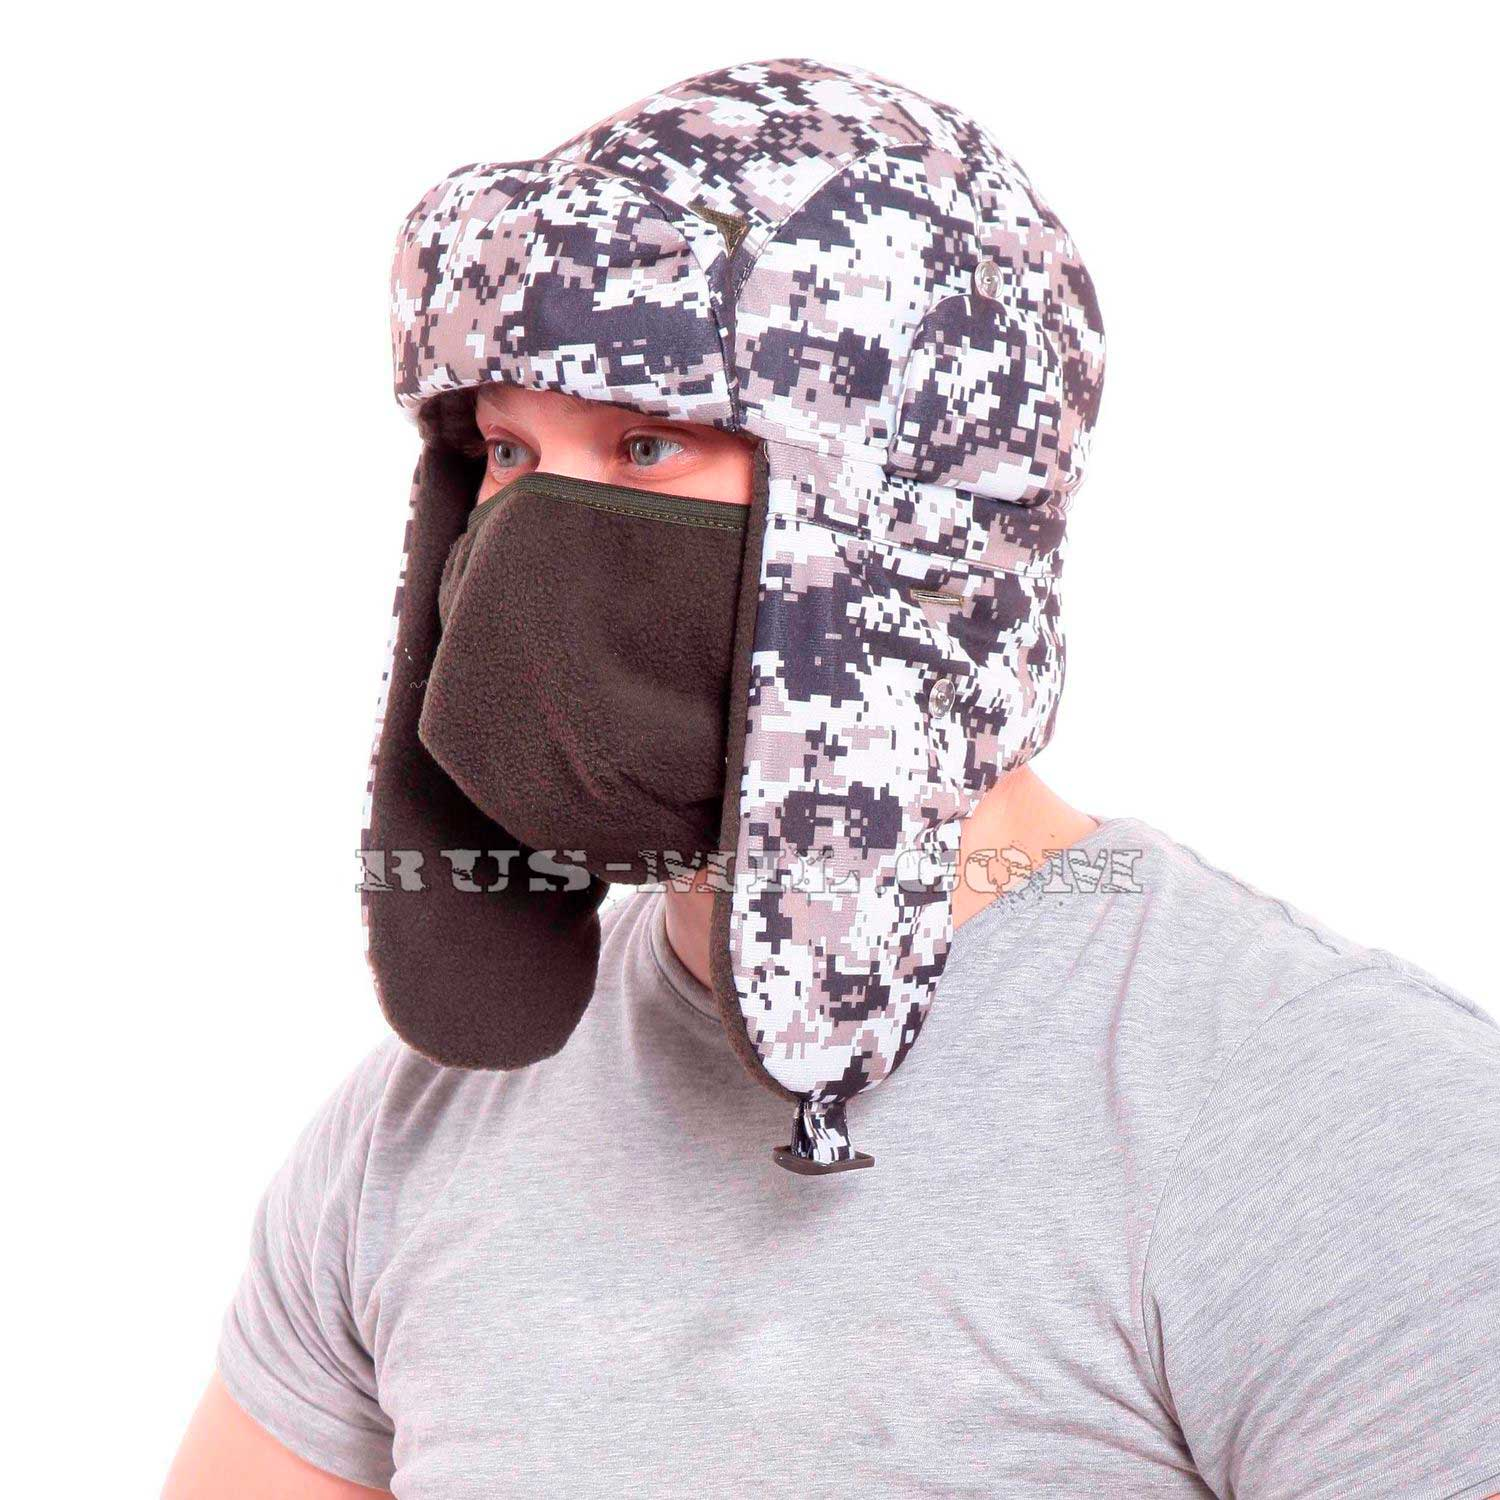 15a3d5885f5bd Russian winter hats with ear flaps